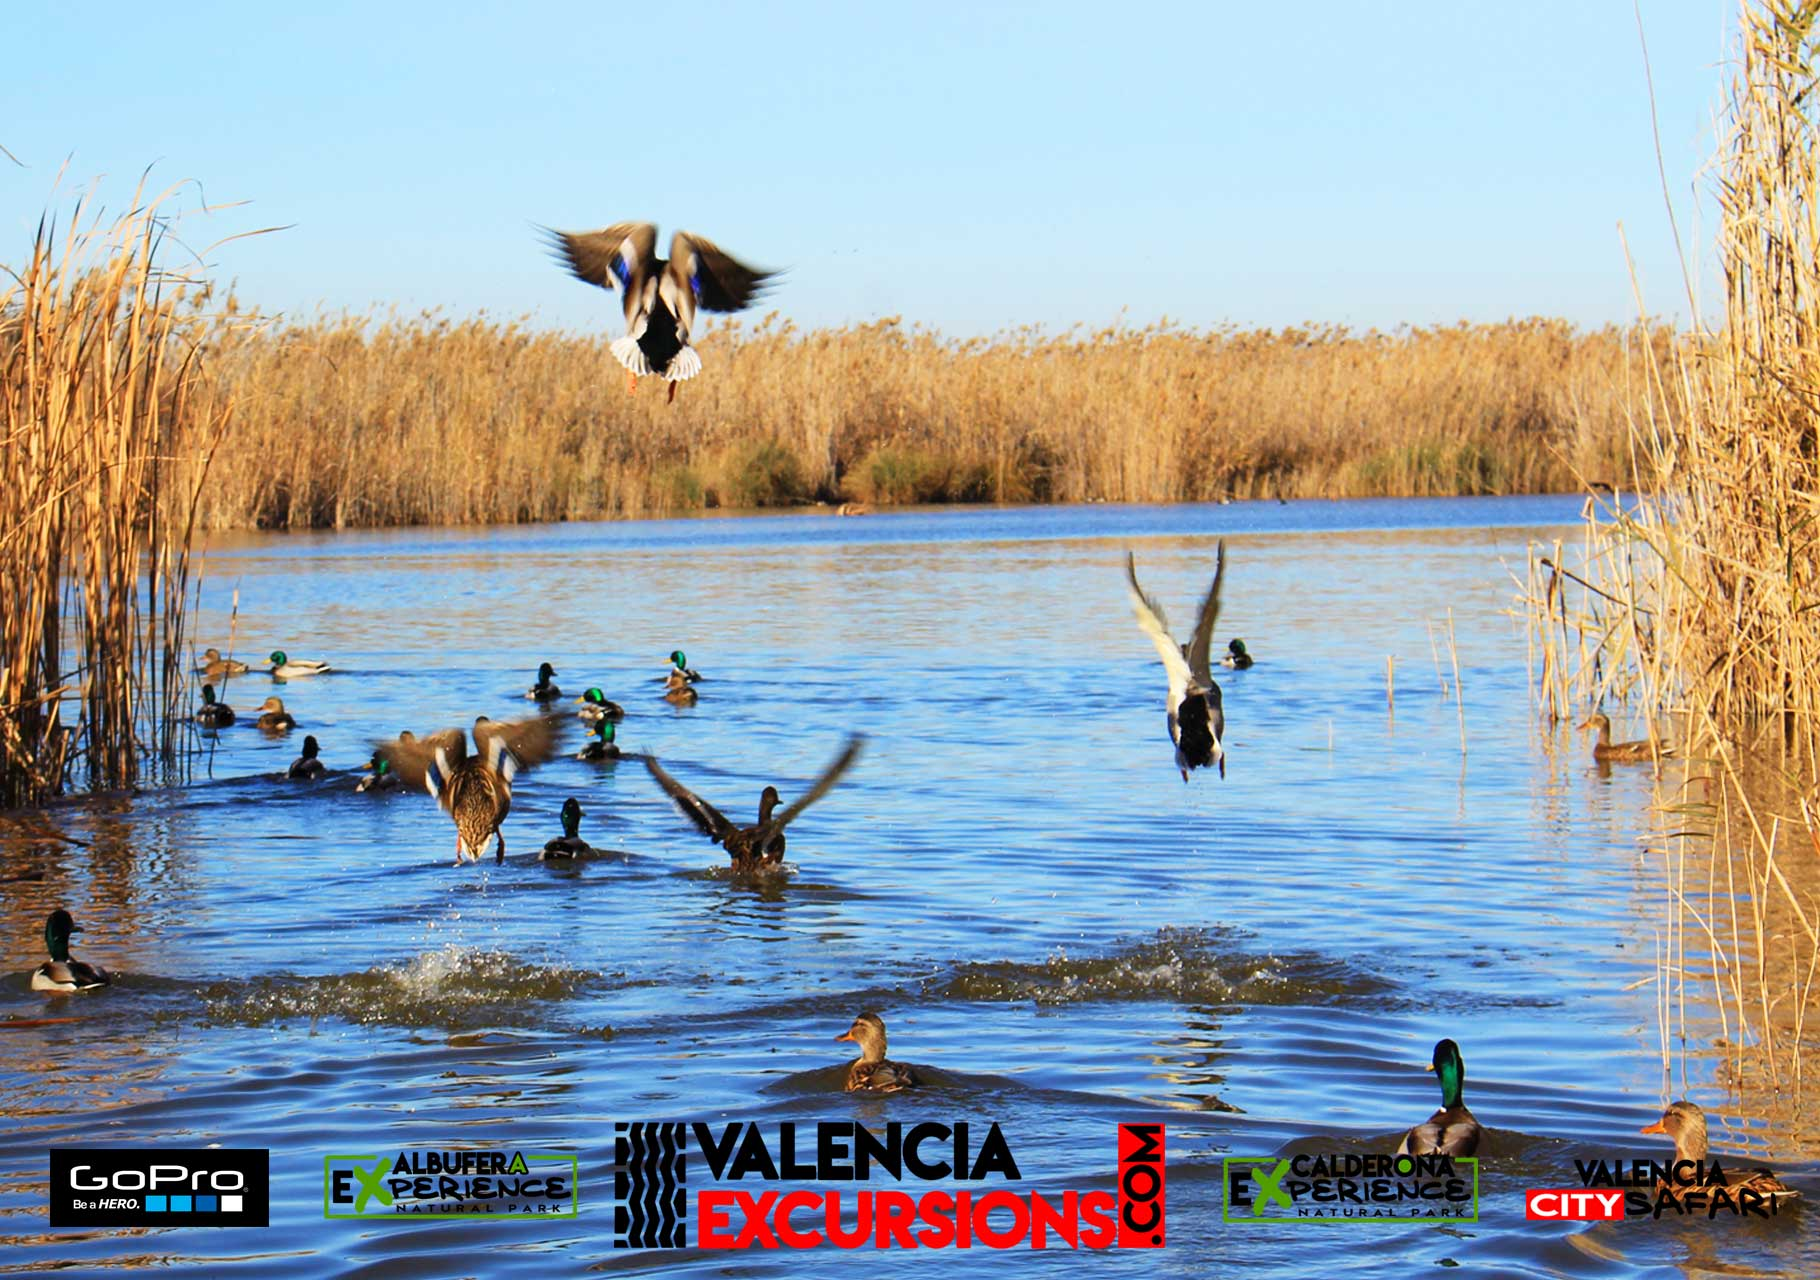 Albufera birdwatching organized by Valencia Excursions. Tour operator in Valencia.